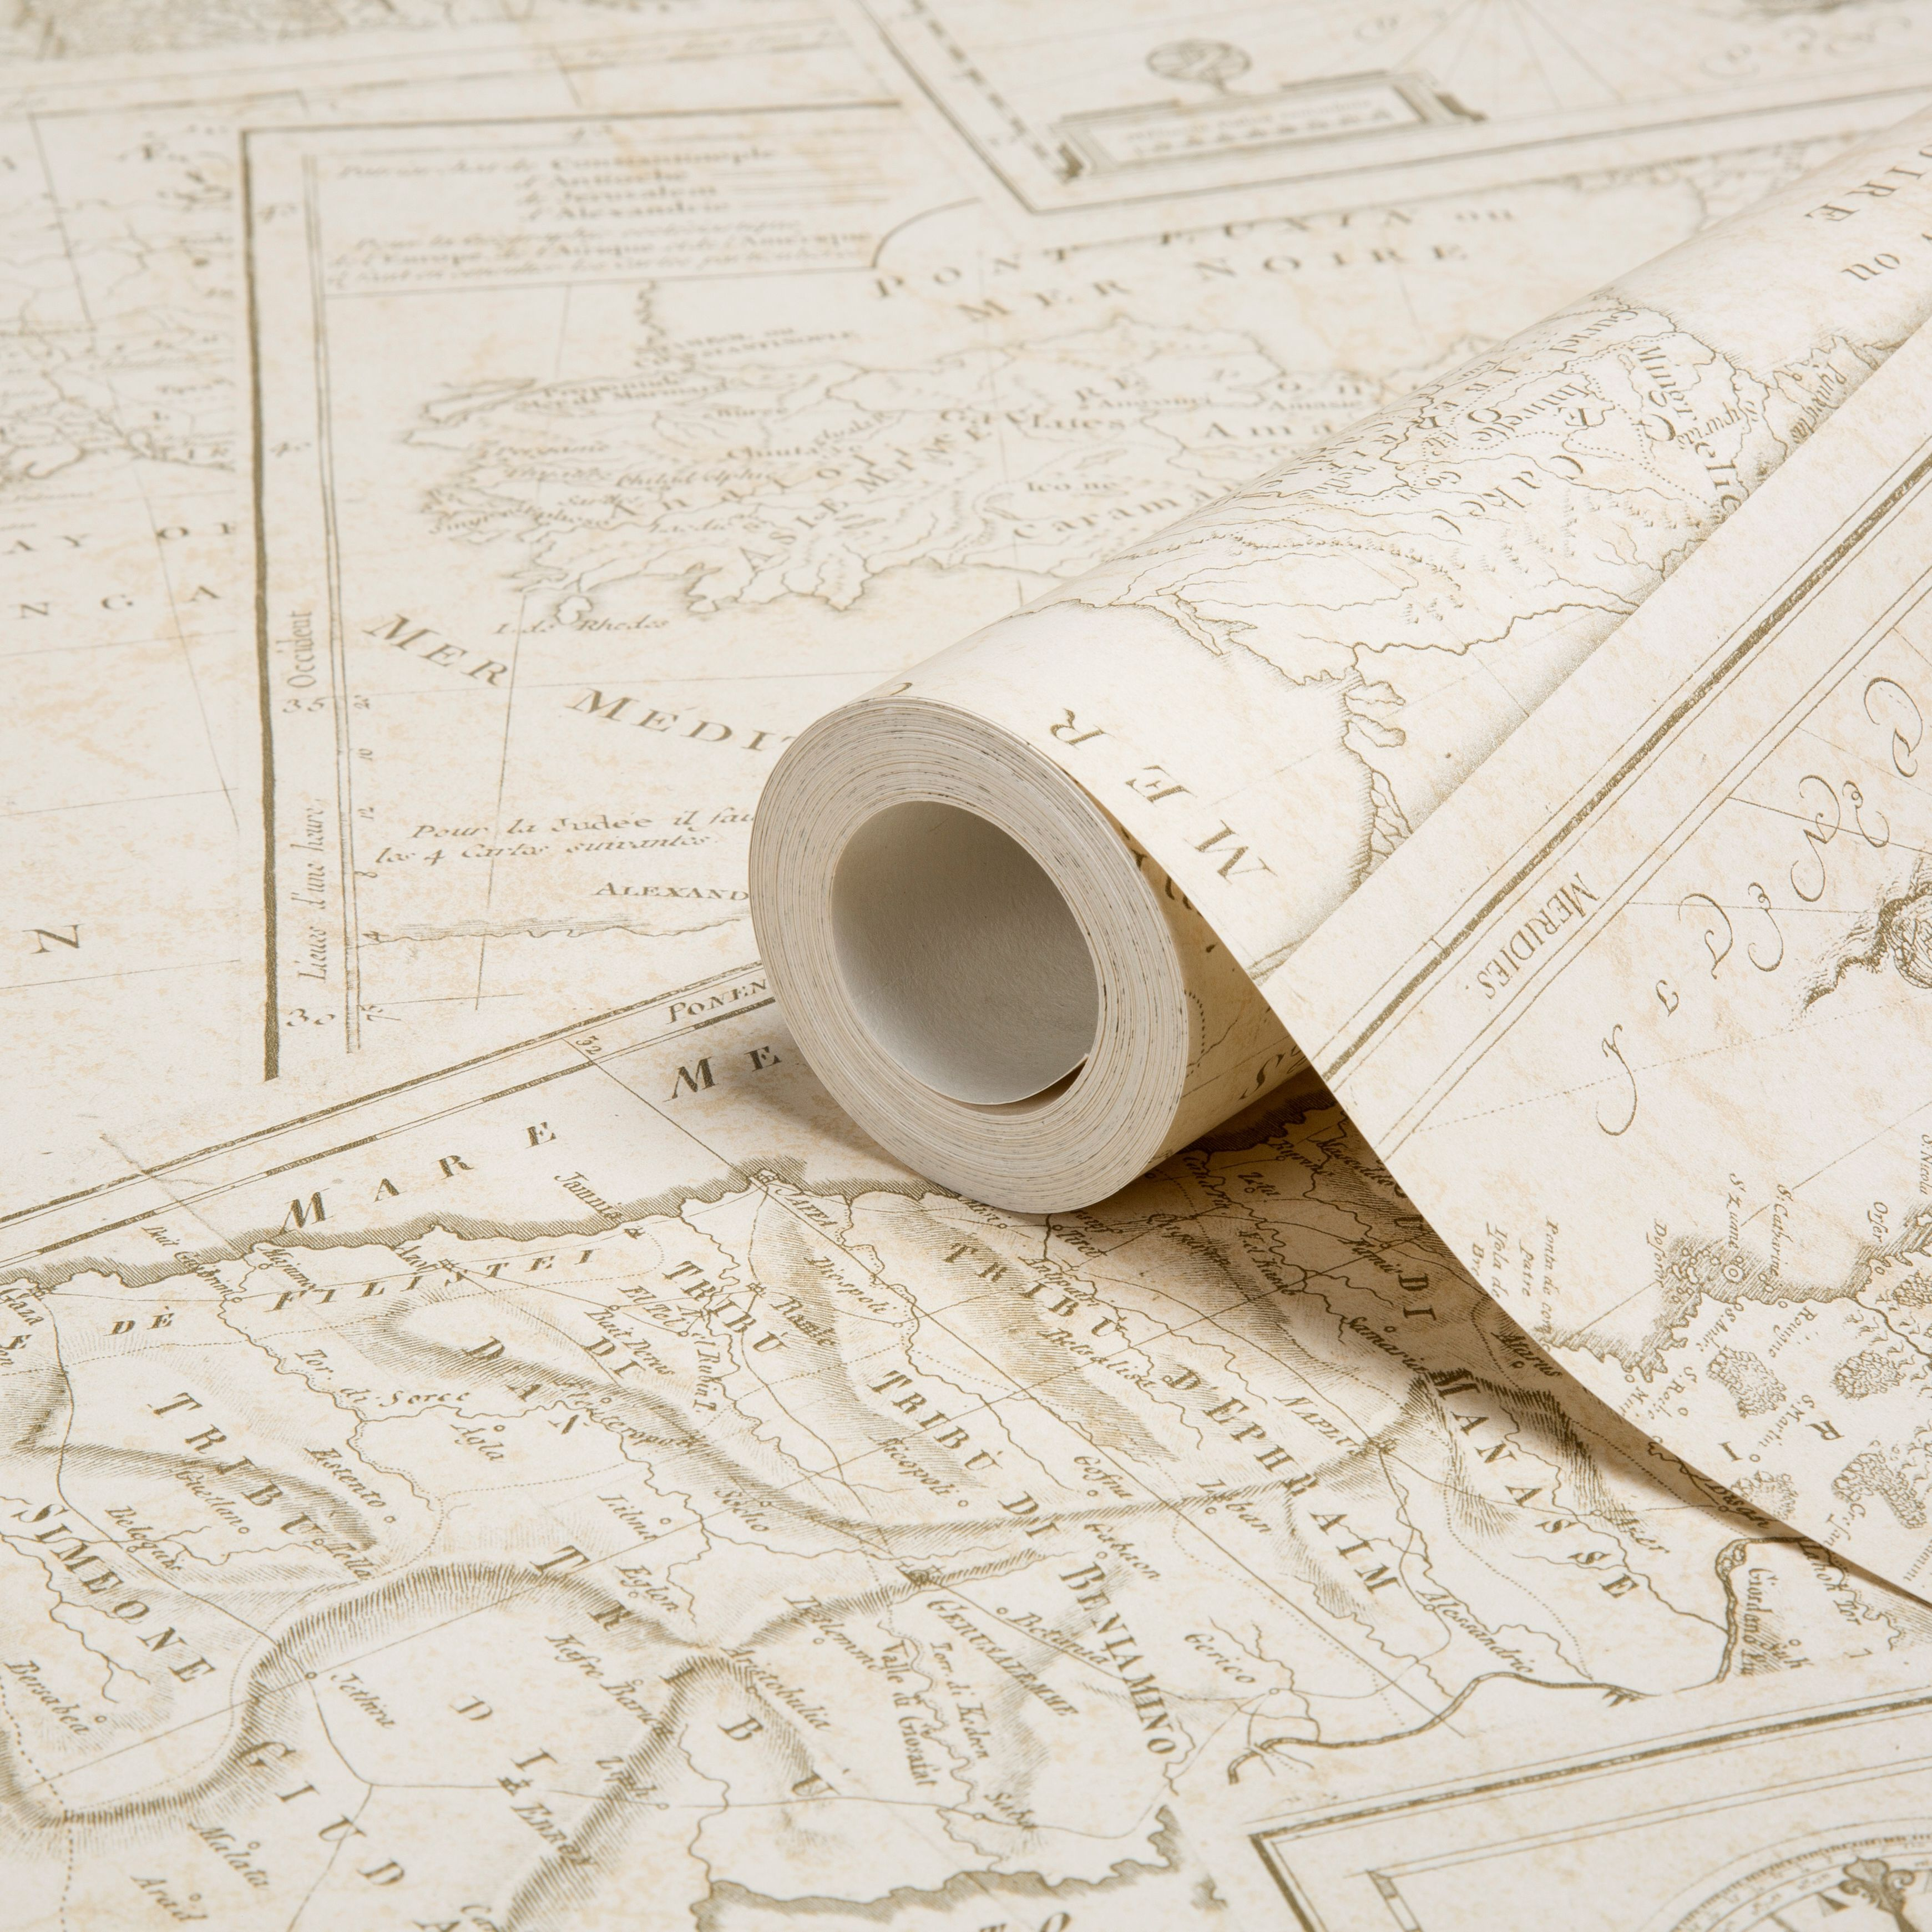 Muriva map wallpaper wallpaper wall papers and boat interior muriva map wallpaper clearance diy at bq gumiabroncs Gallery